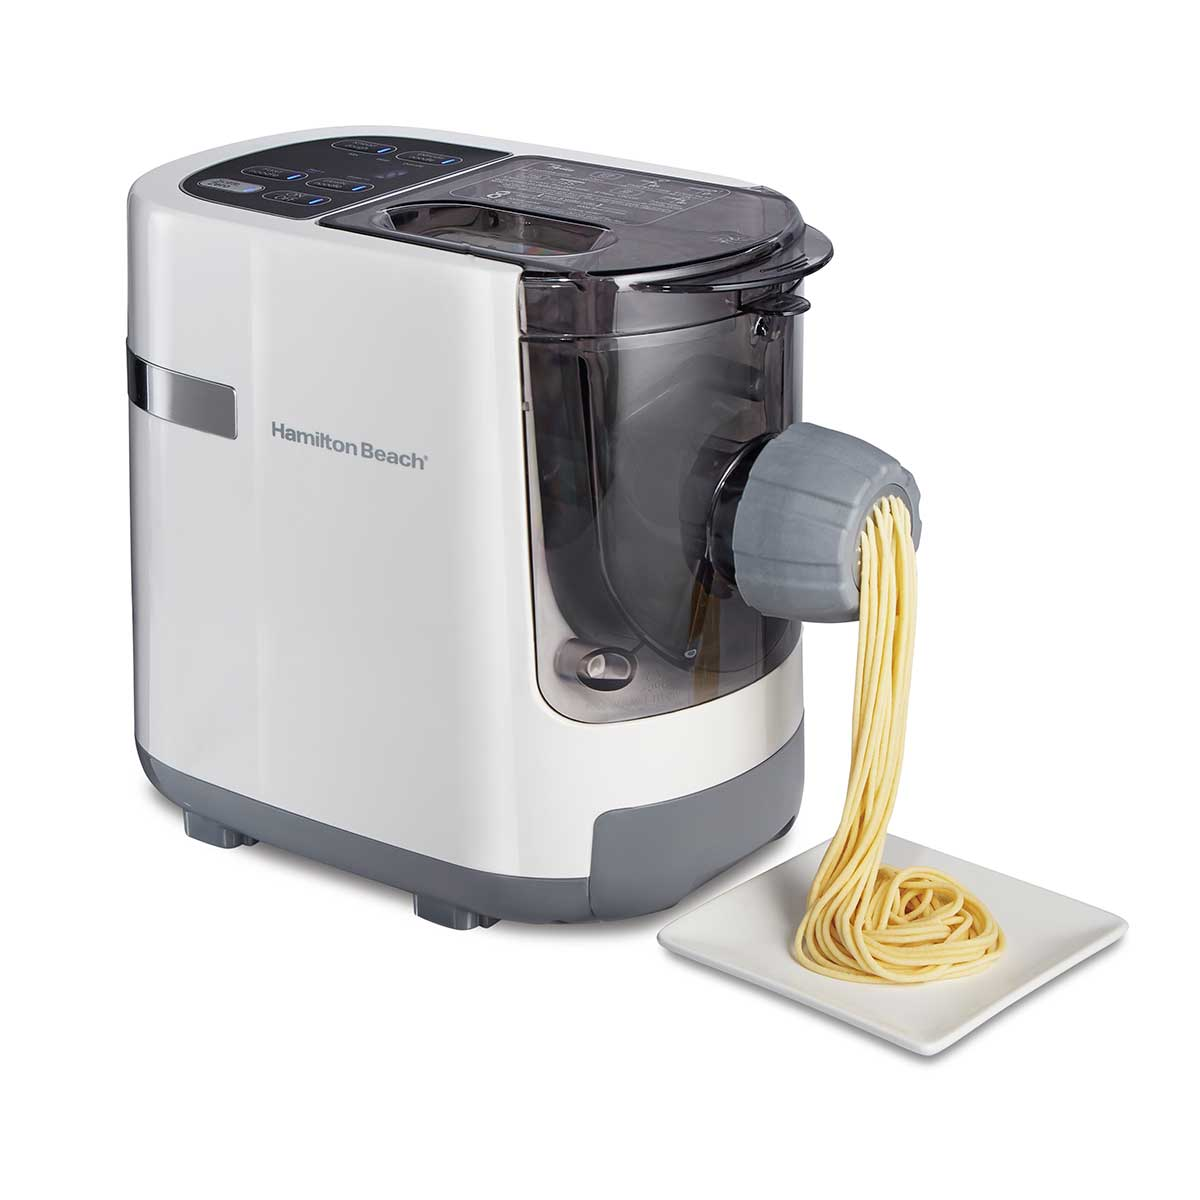 Hamilton Beach Electric Pasta and Noodle Maker, Automatic